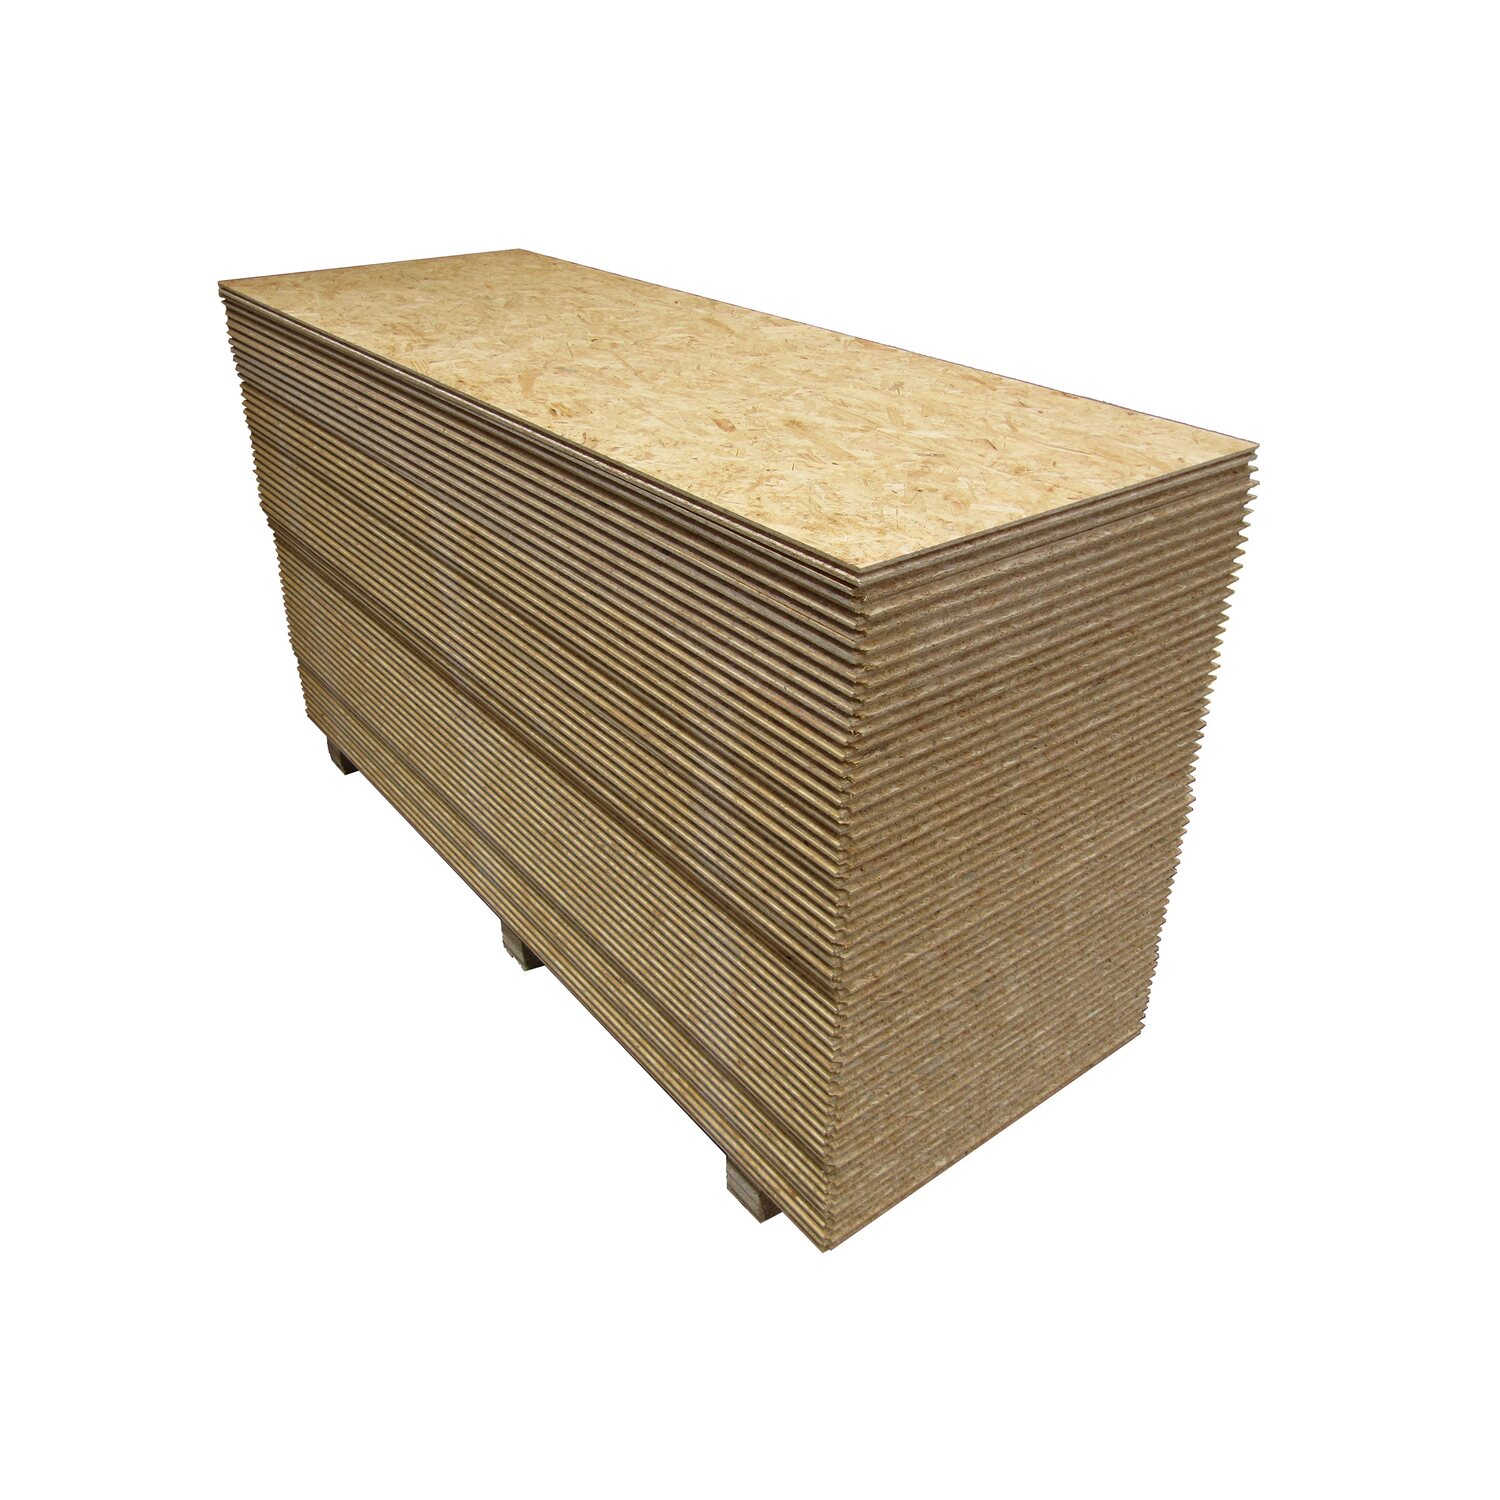 osb verlegeplatten obi osb verlegeplatten geschliffen st rke 18 mm kaufen bei obi osb 3. Black Bedroom Furniture Sets. Home Design Ideas